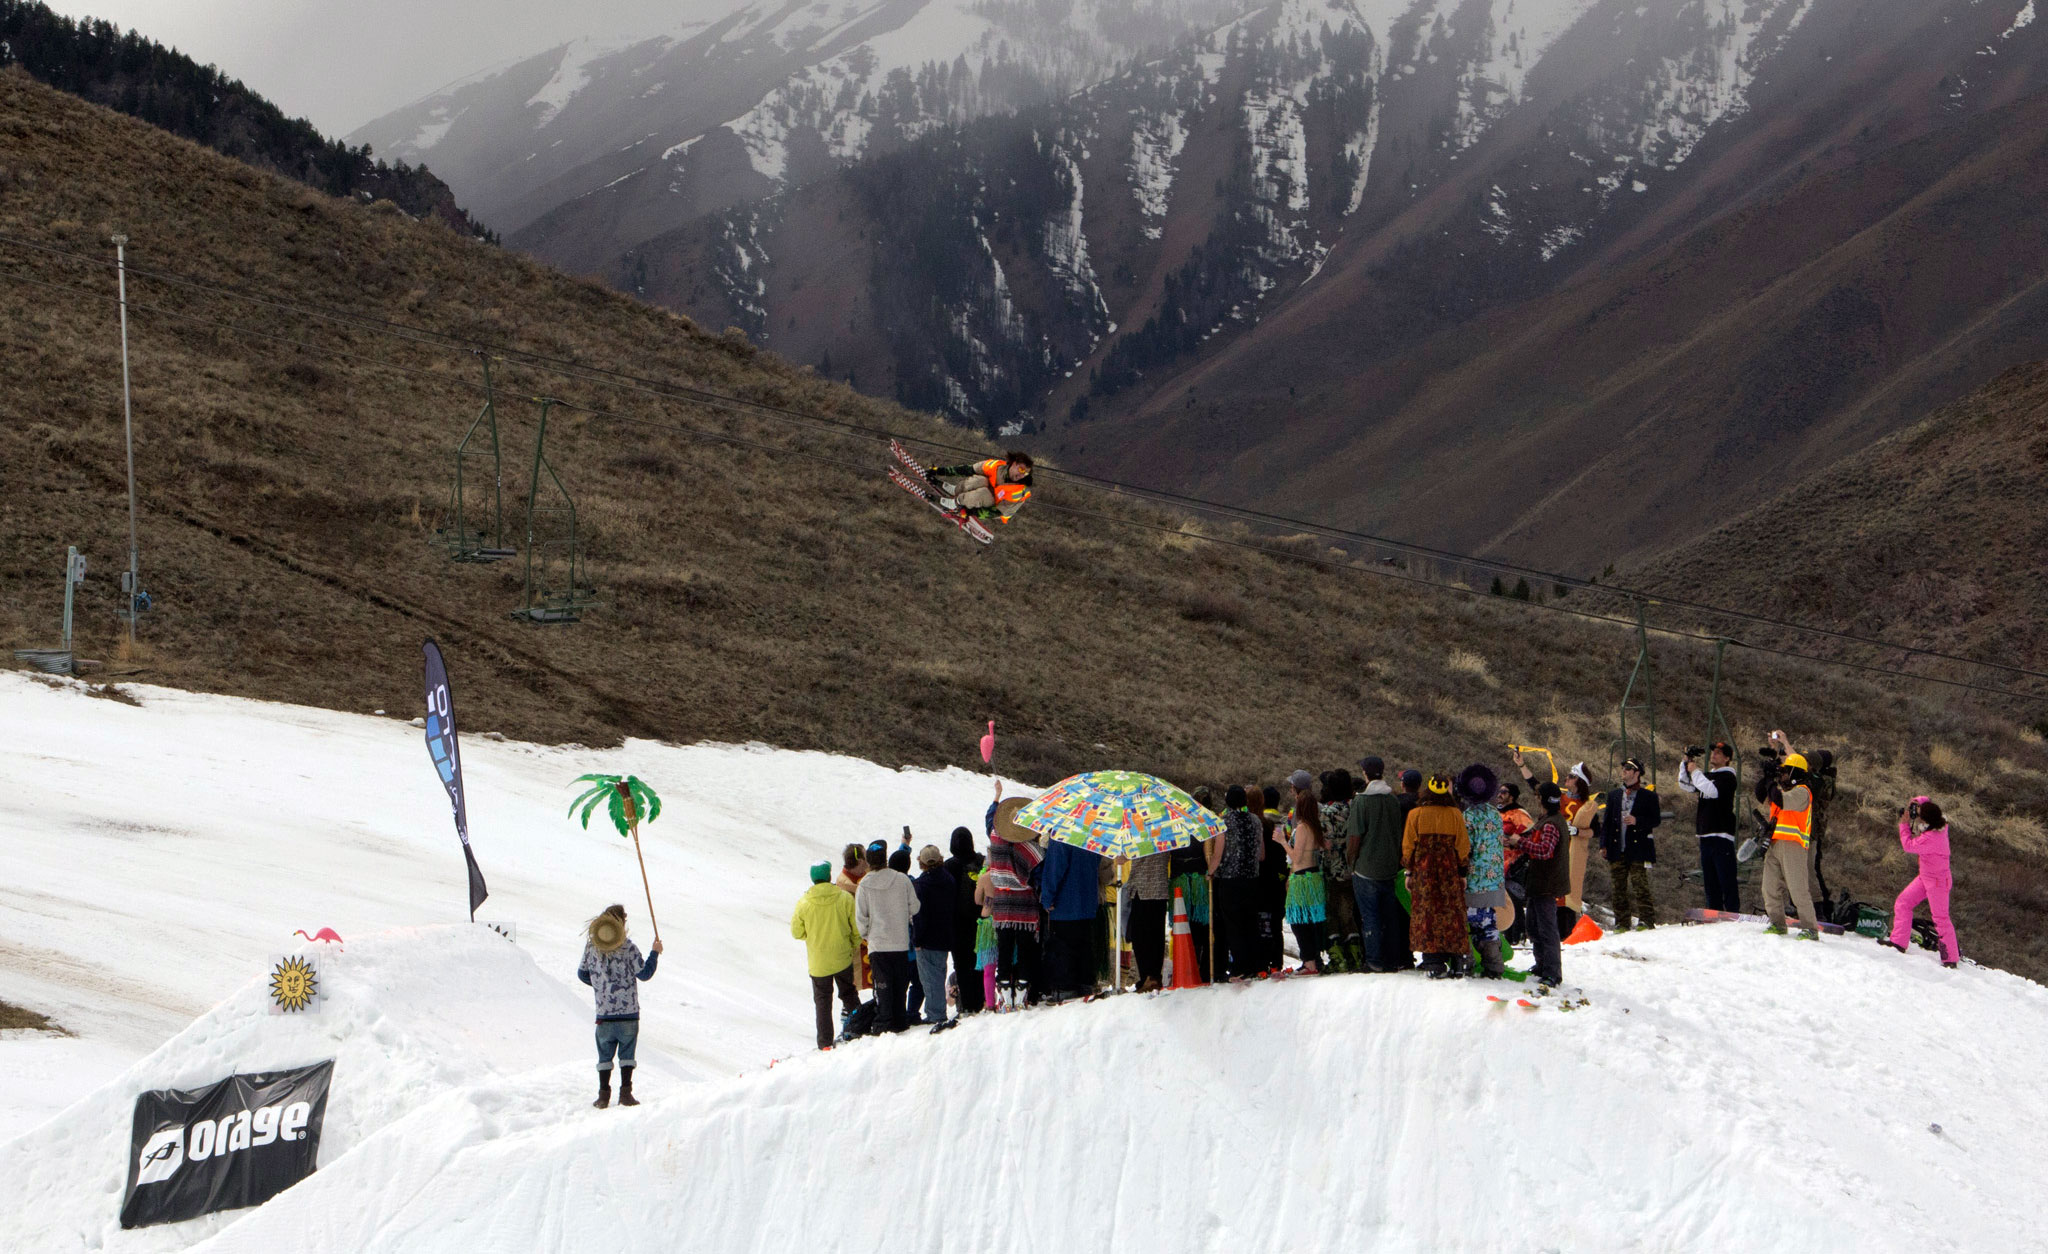 Mike Hornbeck at the Orage Masters at Sun Valley, Idaho.